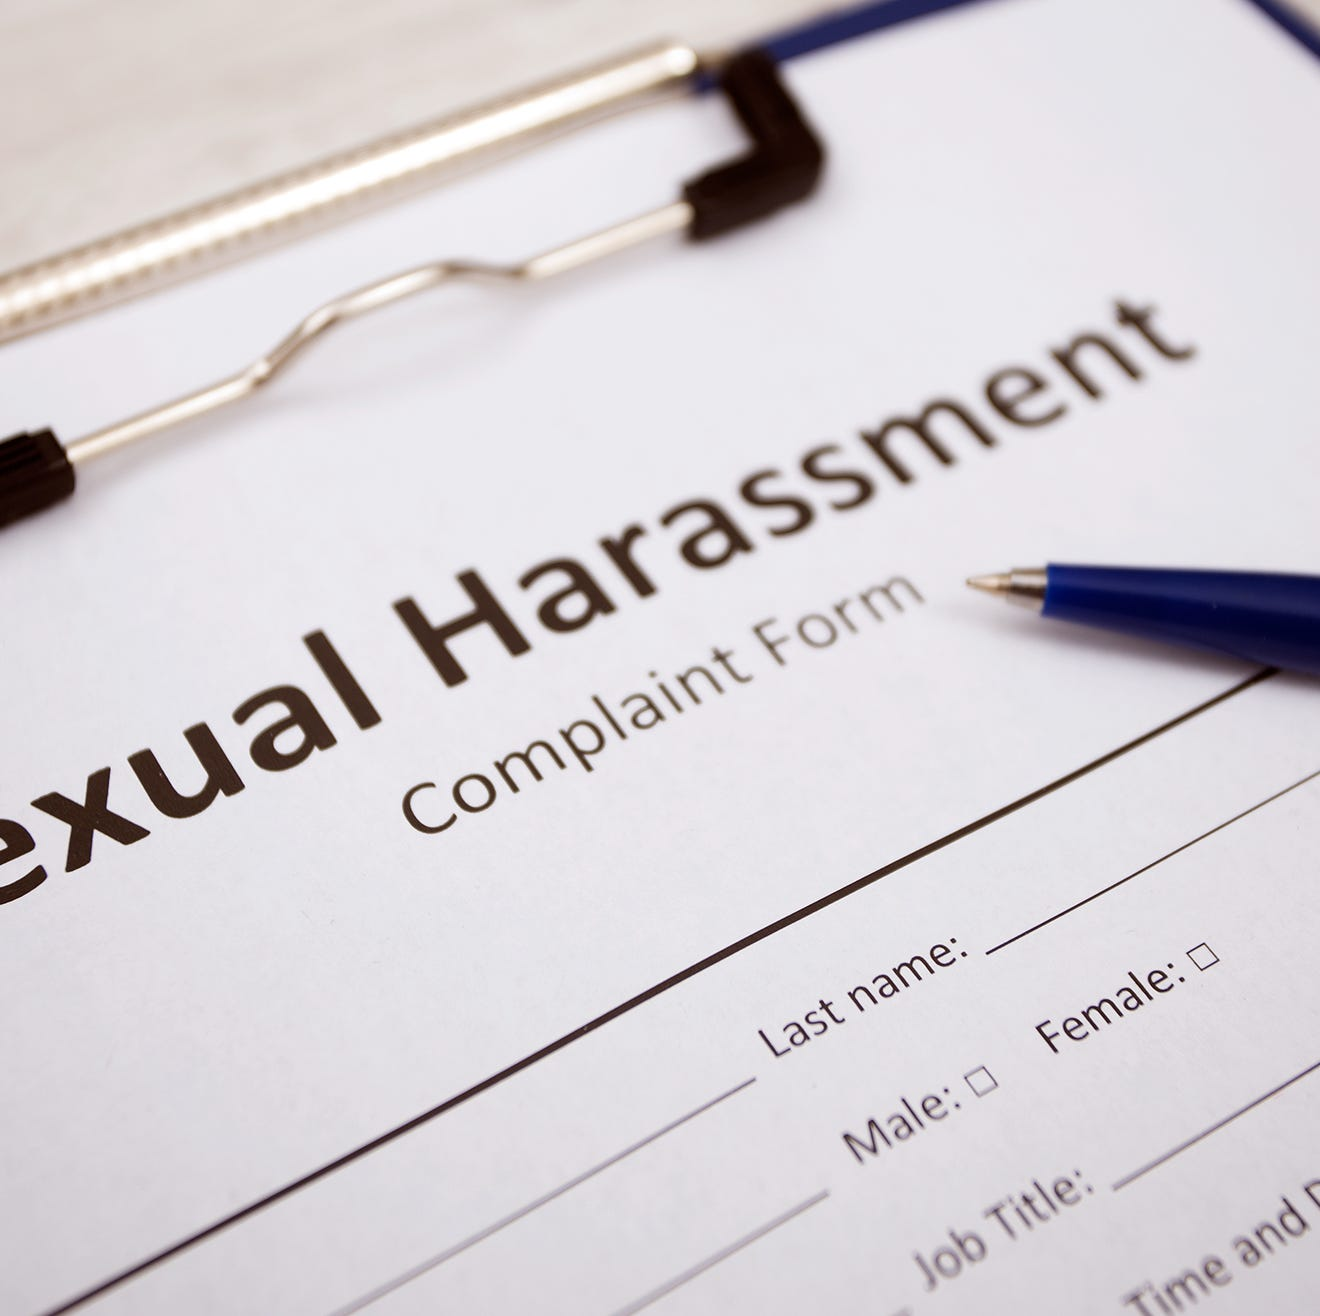 What to do if you are harassed or discriminated against at work